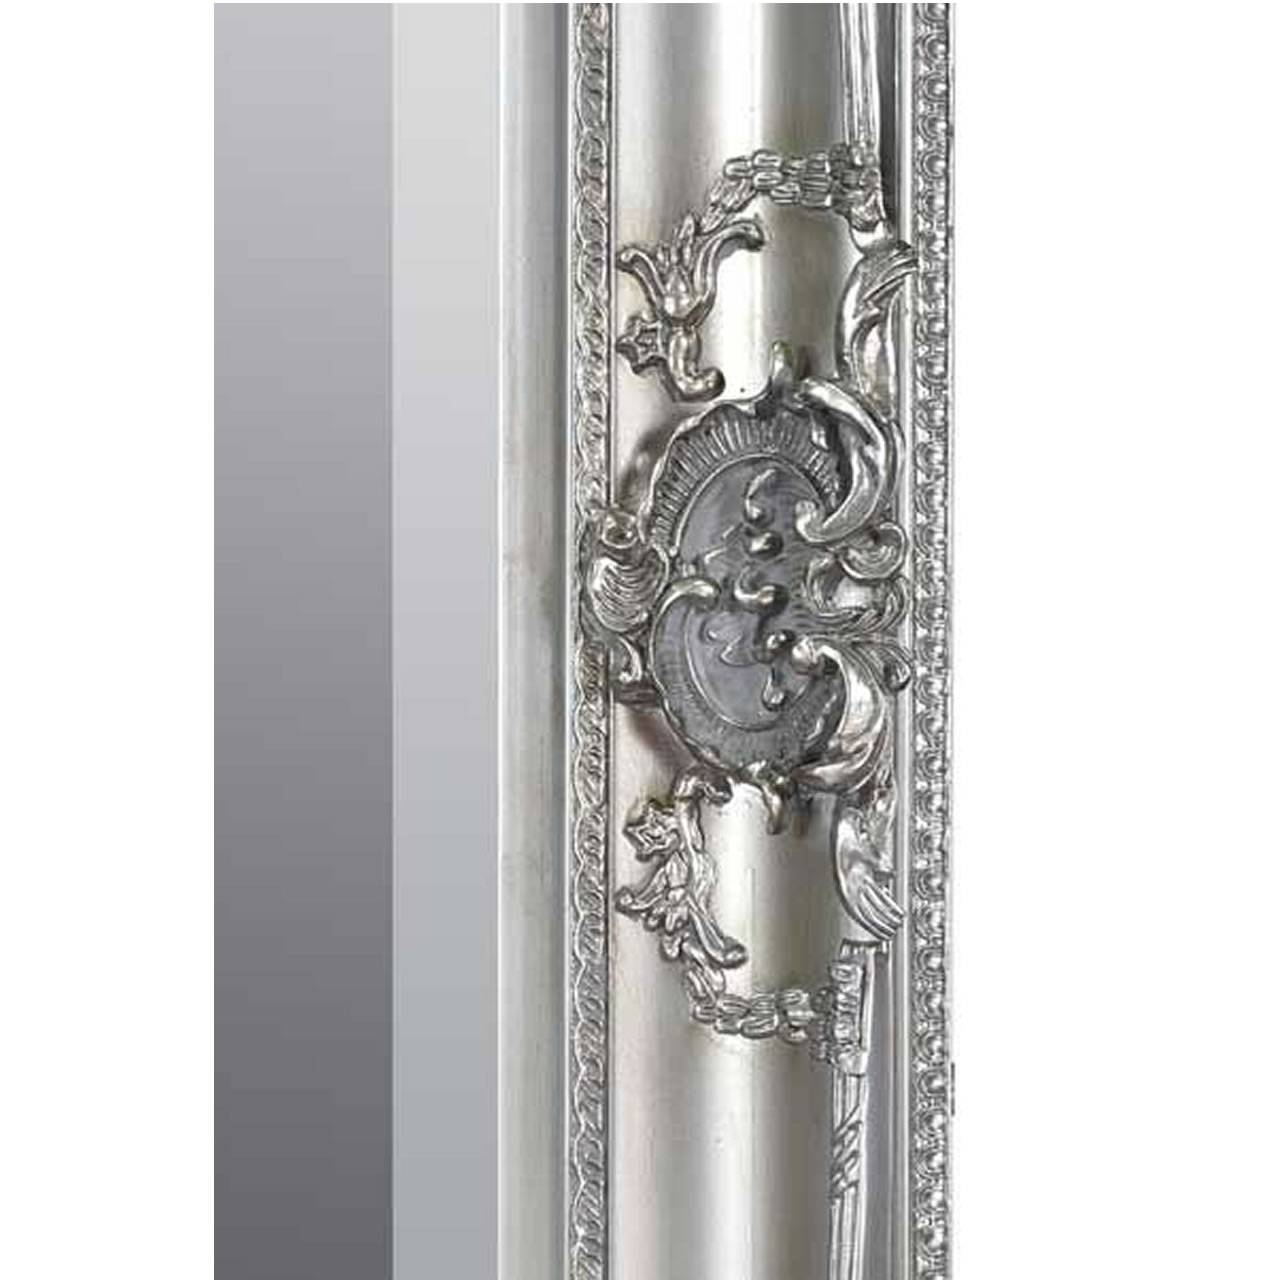 Walton Large Silver Ornate Wall Mirror with regard to Silver Ornate Framed Mirrors (Image 25 of 25)